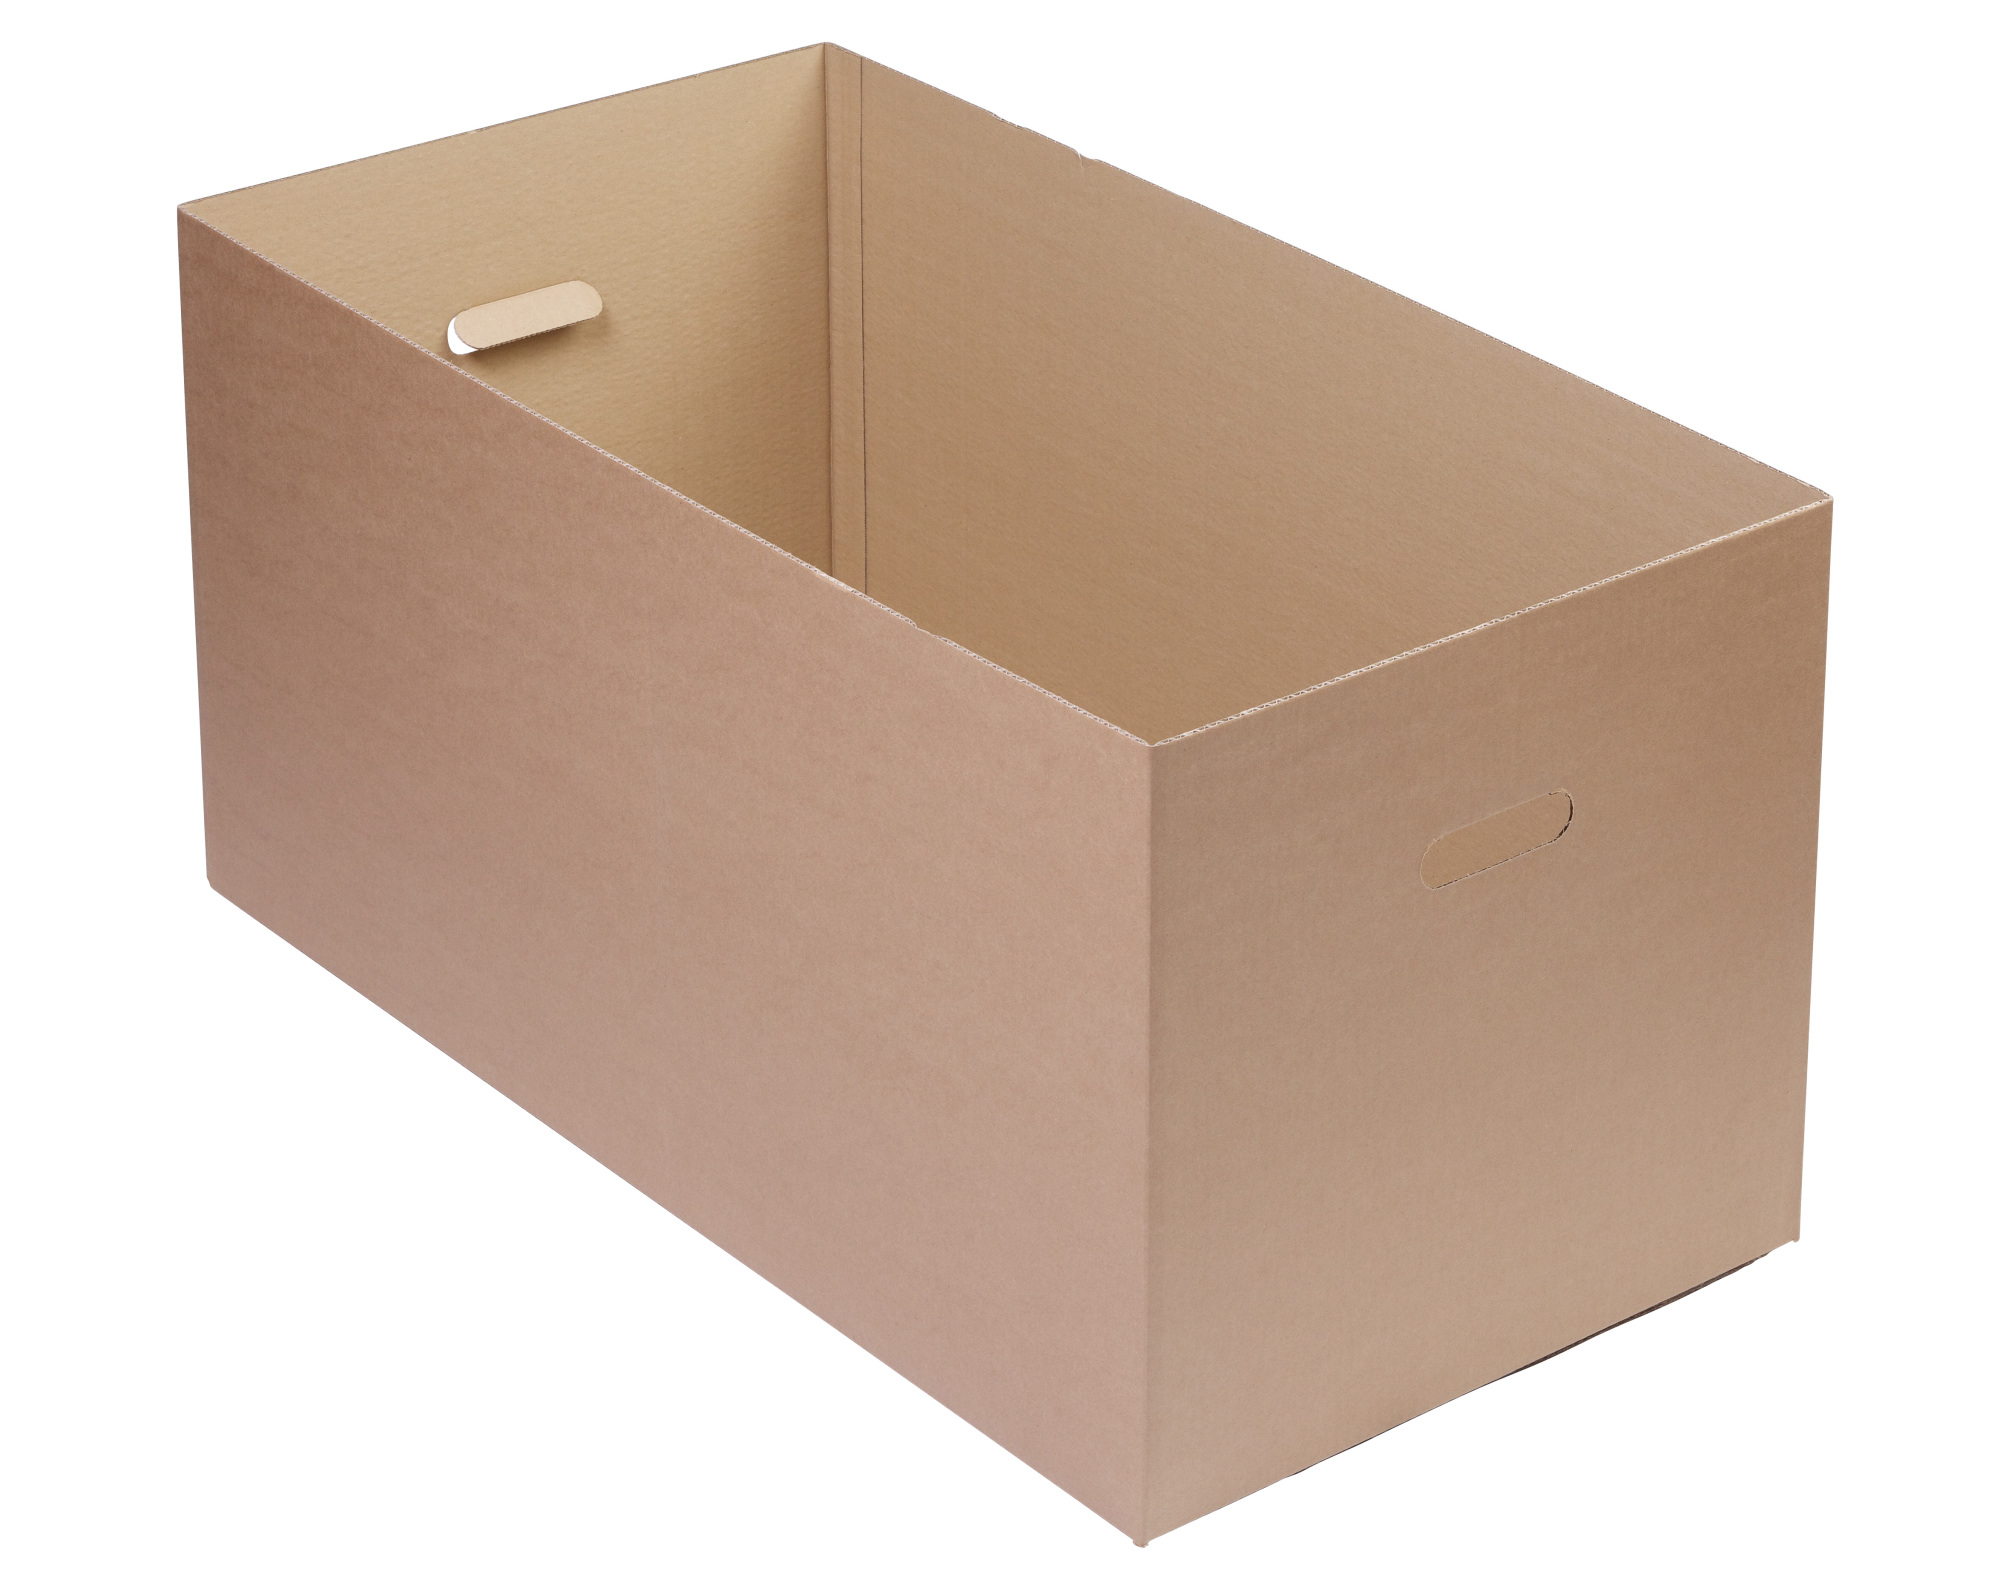 770 x 400 x 380mm Single Wall Carton 0200 with Hand Holes